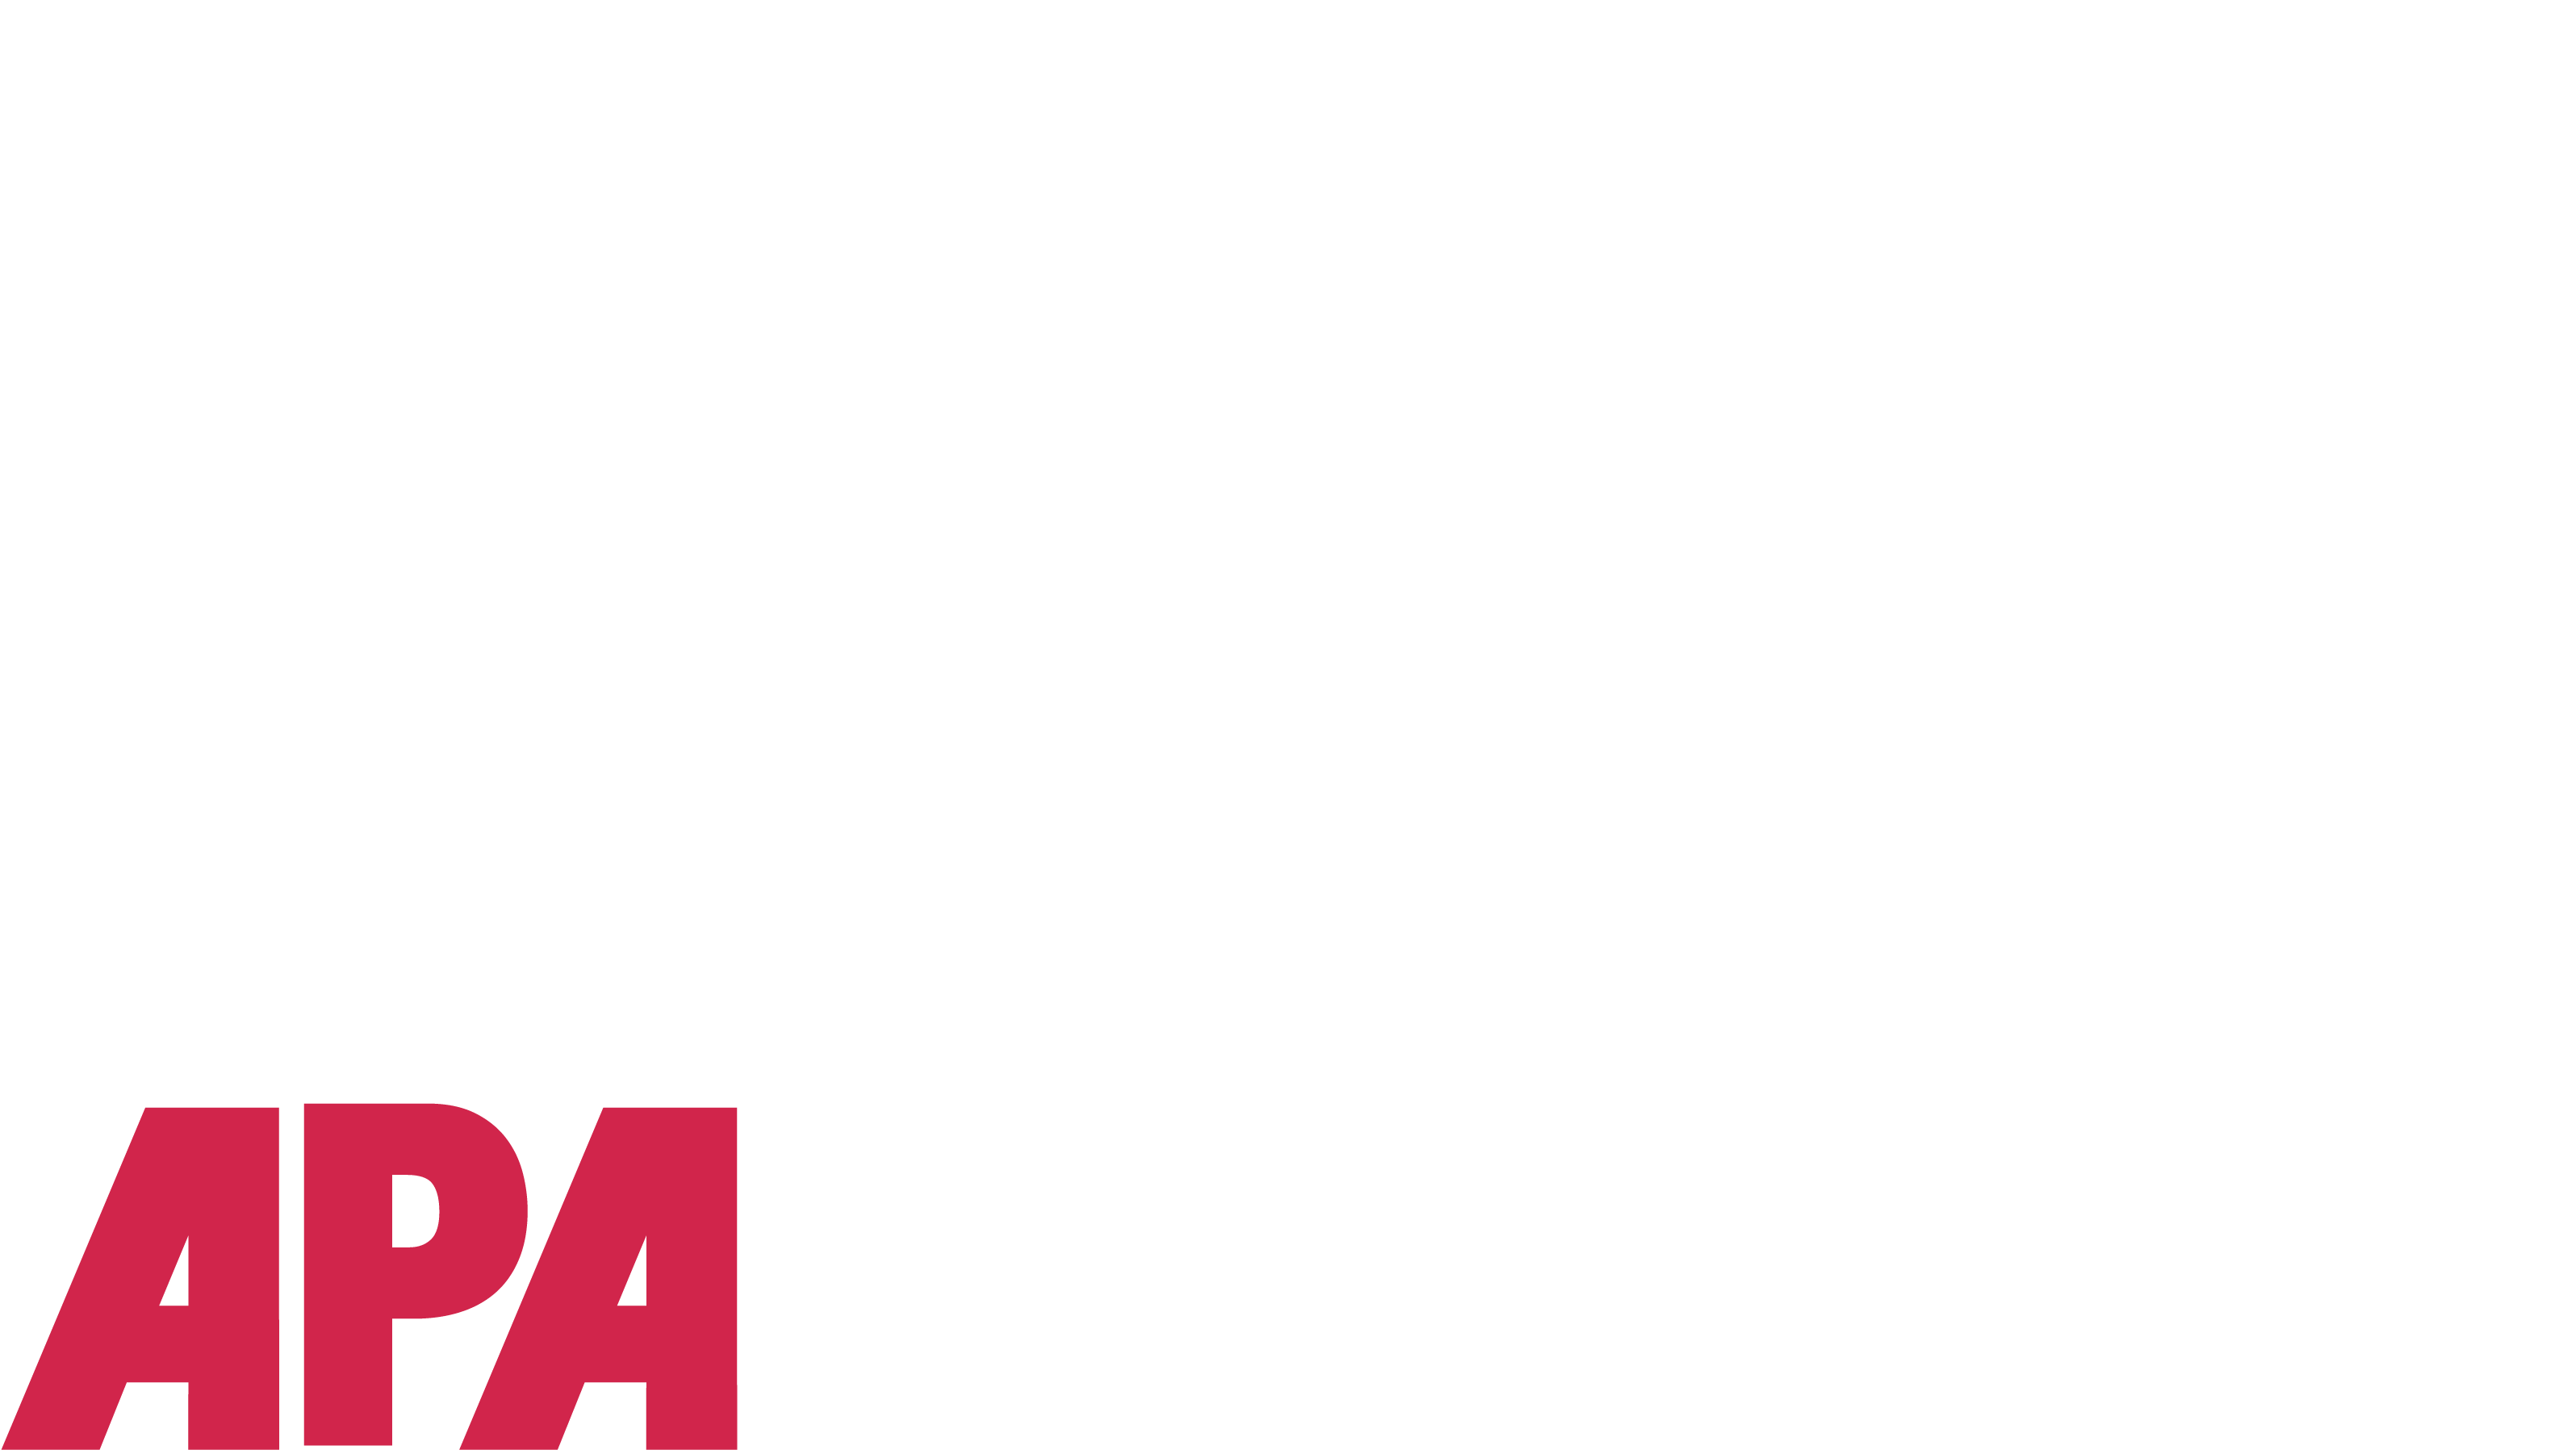 Download Hbo Apa Visionaries - Hbo Now App - Full Size PNG